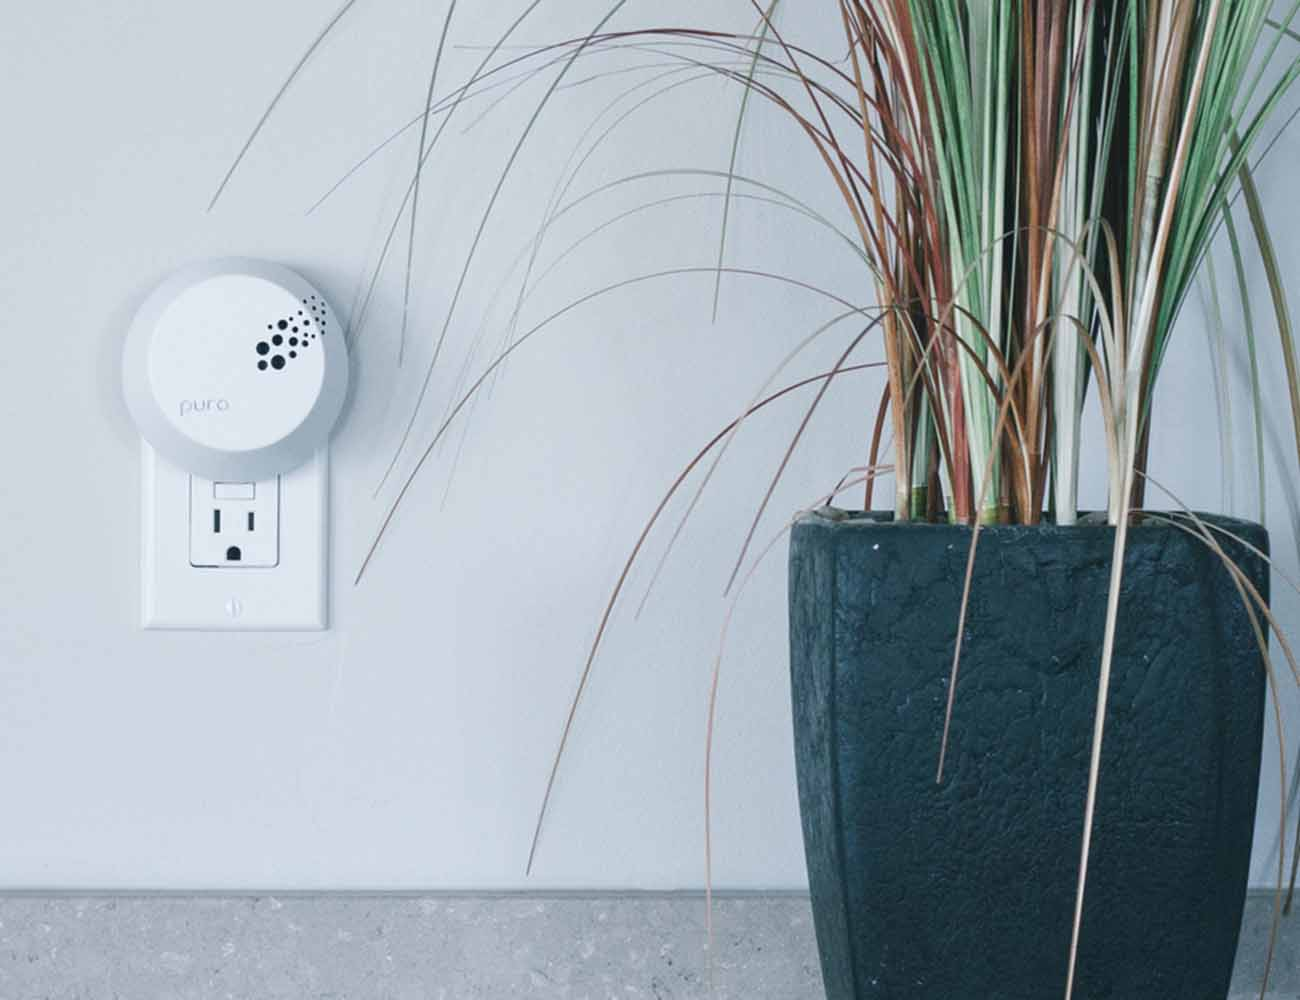 Pura Scents – The World's First Smart Air Freshener